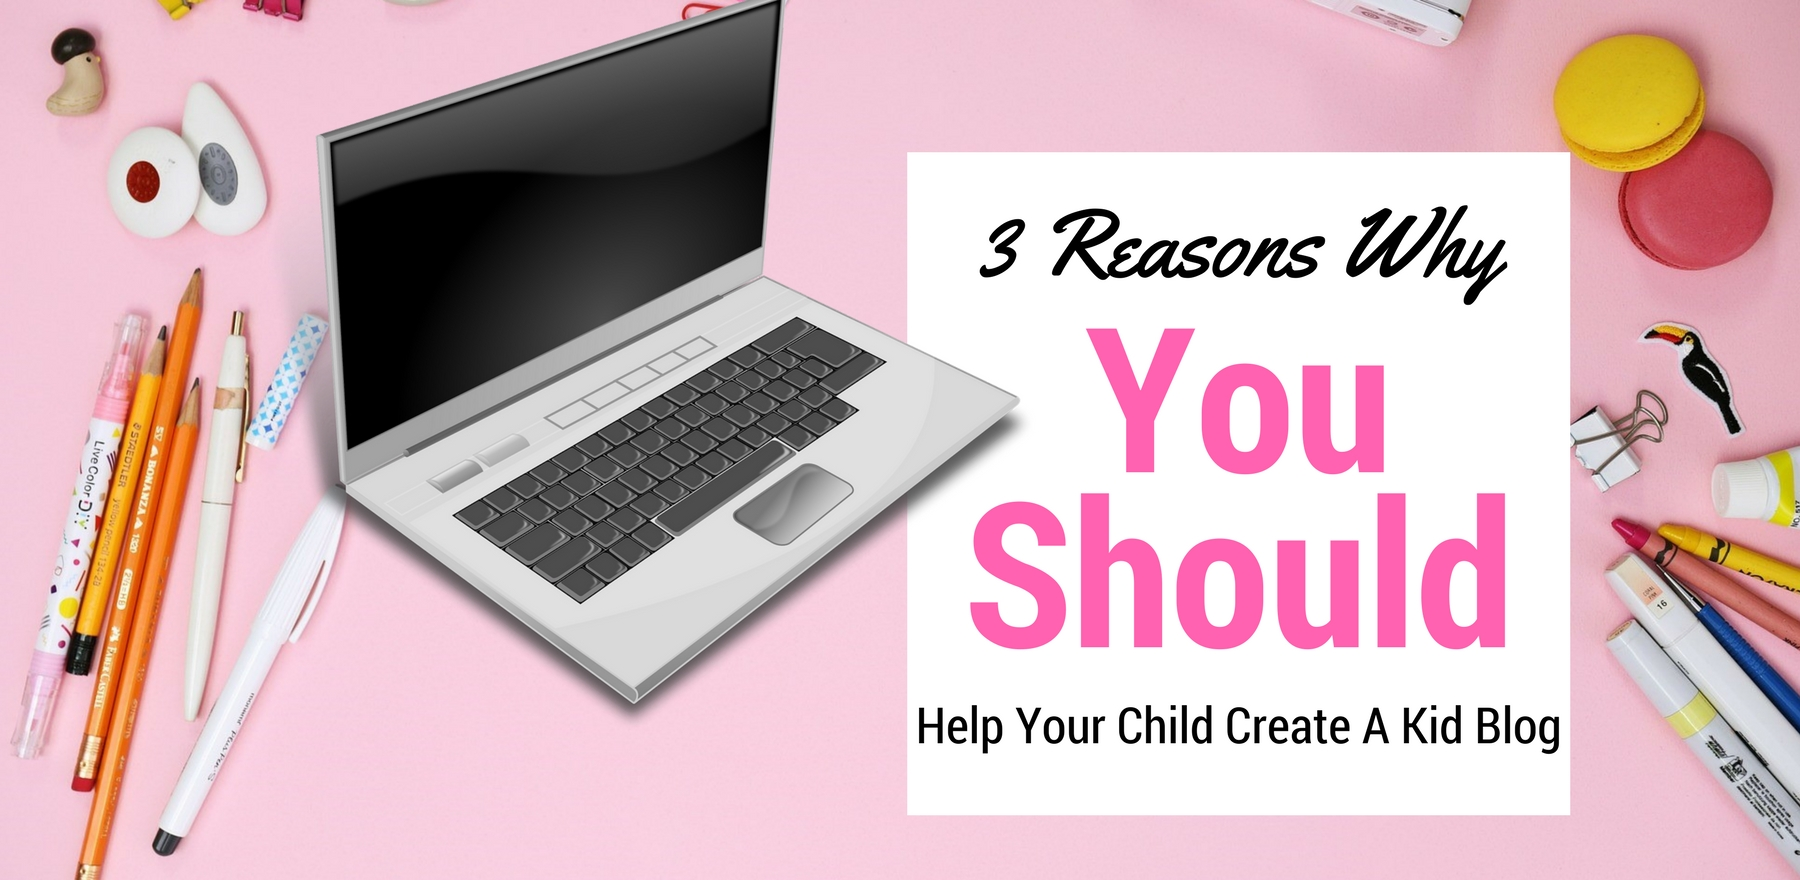 Creating a kid blog is great!